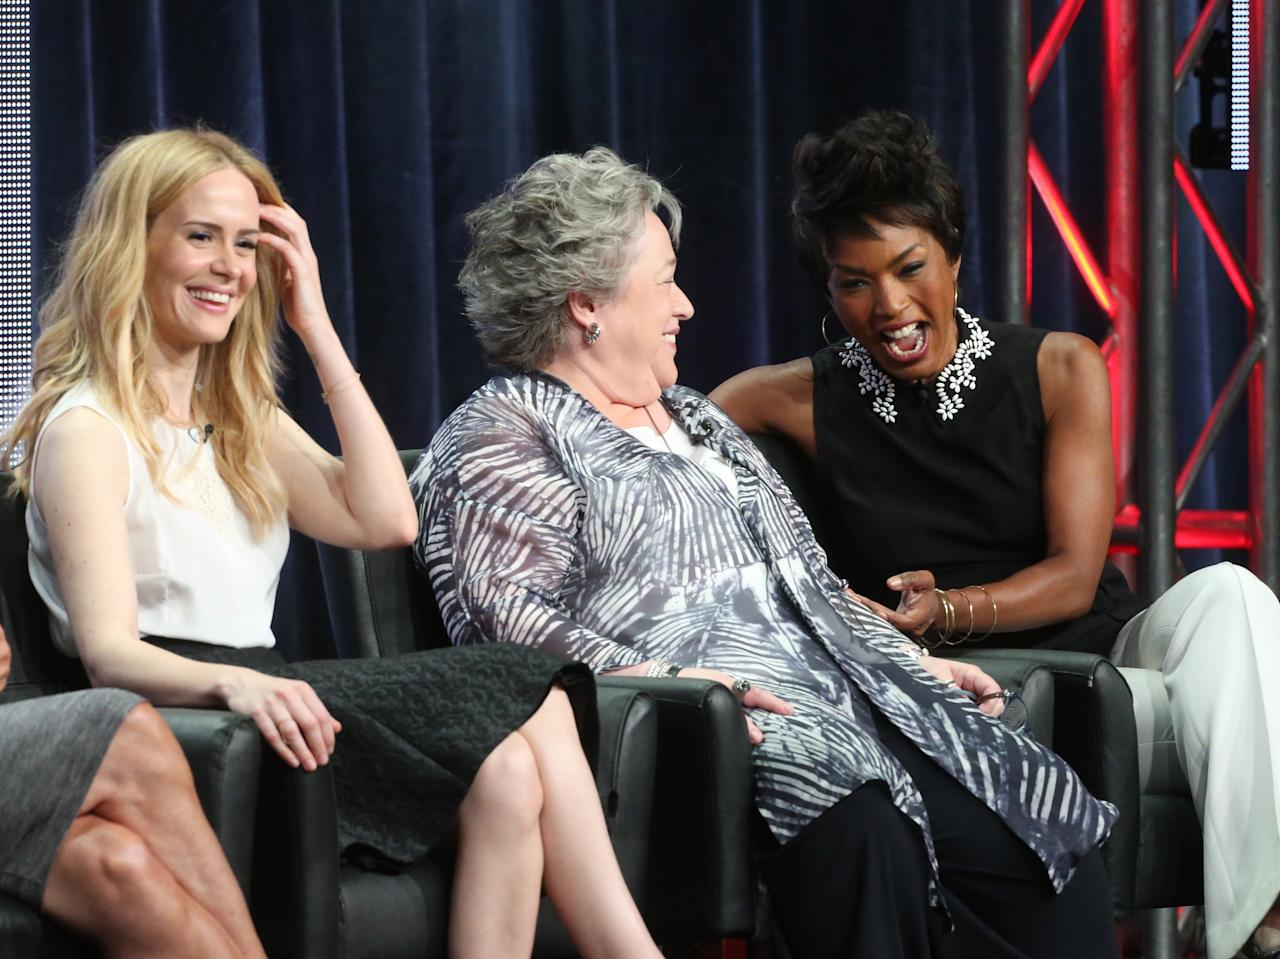 "BEVERLY HILLS, CA - AUGUST 02: (L-R) Actresses Sarah Paulson, Kathy Bates, and Angela Bassett speak onstage during the ""American Horror Story: Coven"" panel discussion at the FX portion of the 2013 Summer Television Critics Association tour - Day 10 at The Beverly Hilton Hotel on August 2, 2013 in Beverly Hills, California. (Photo by Frederick M. Brown/Getty Images)"